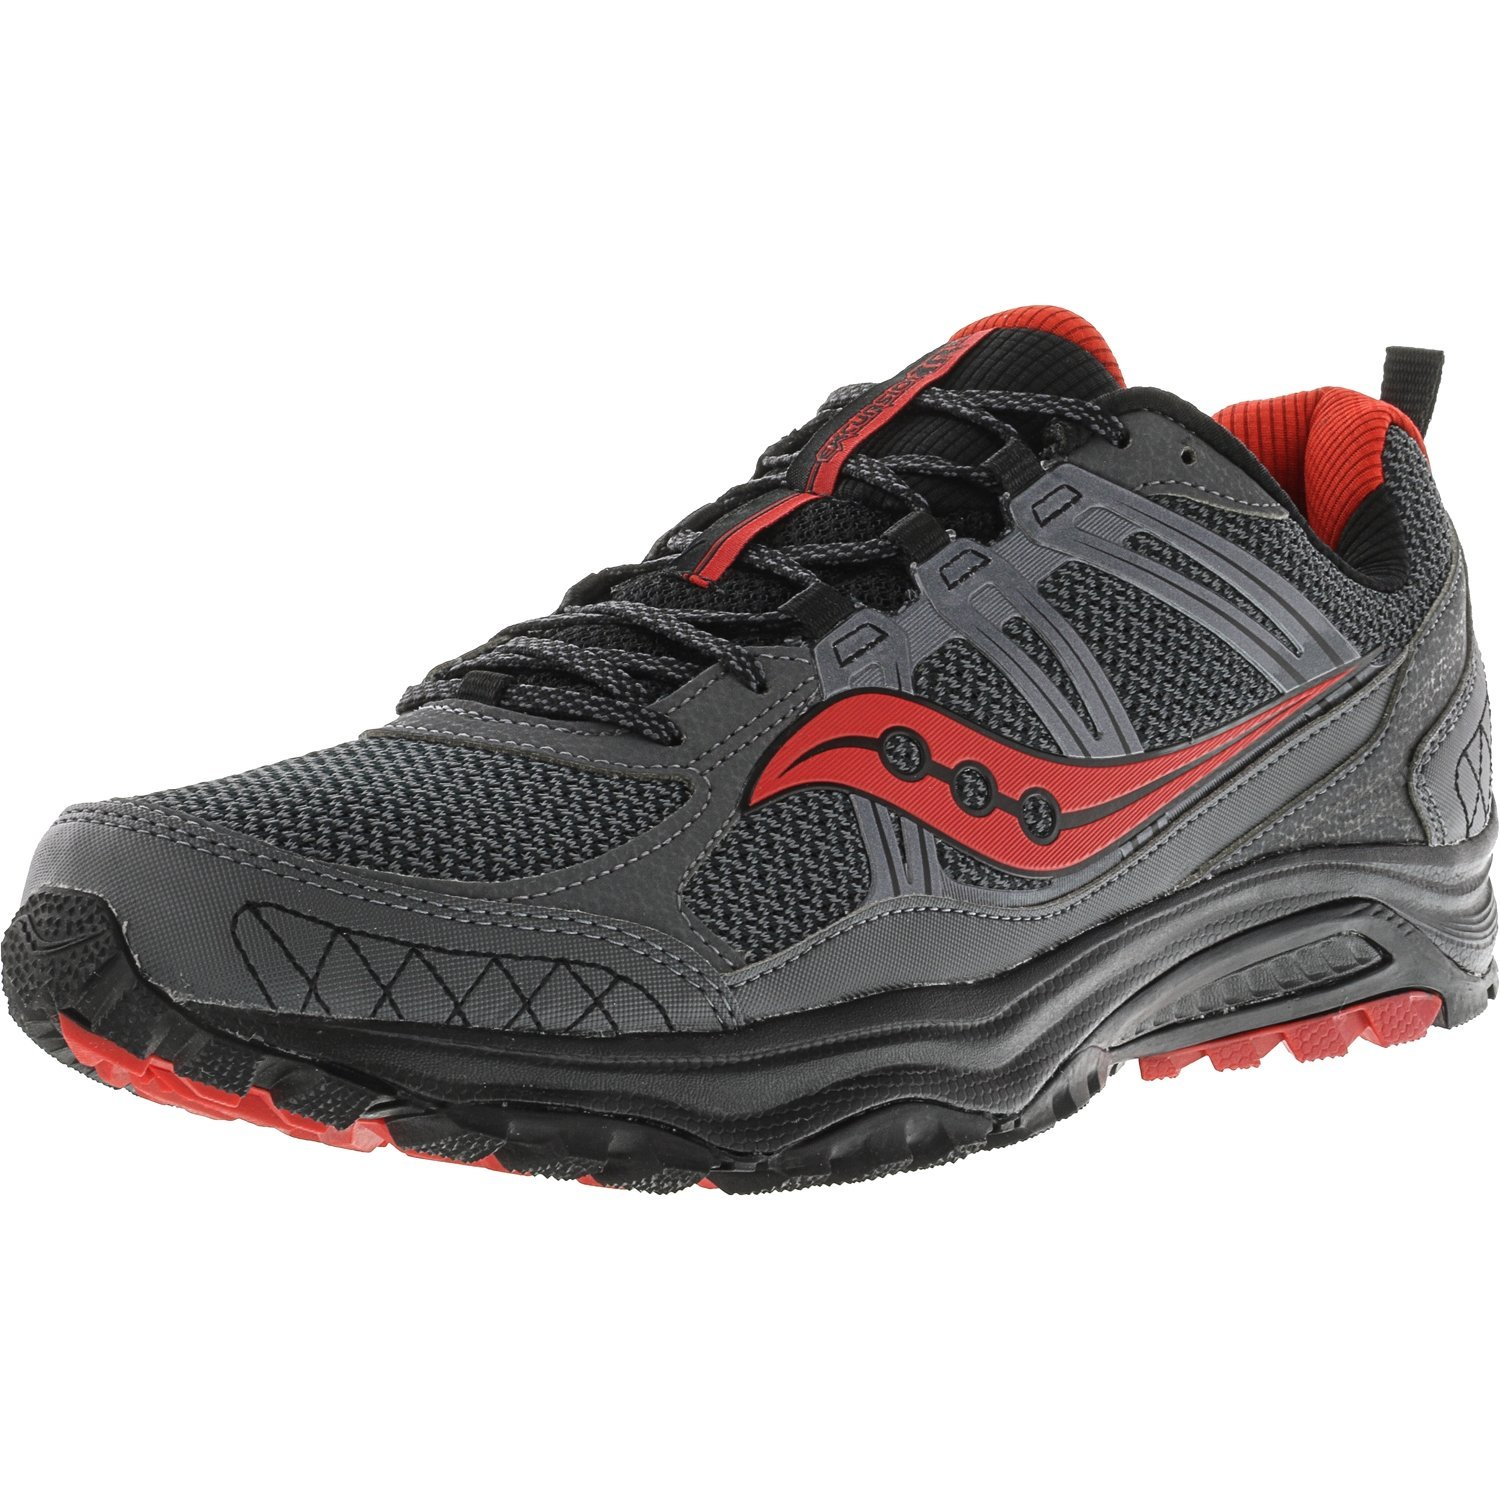 Saucony Men's Grid Excursion TR10 Running Shoe, Grey/Black/Red, 8 M US by Saucony (Image #1)